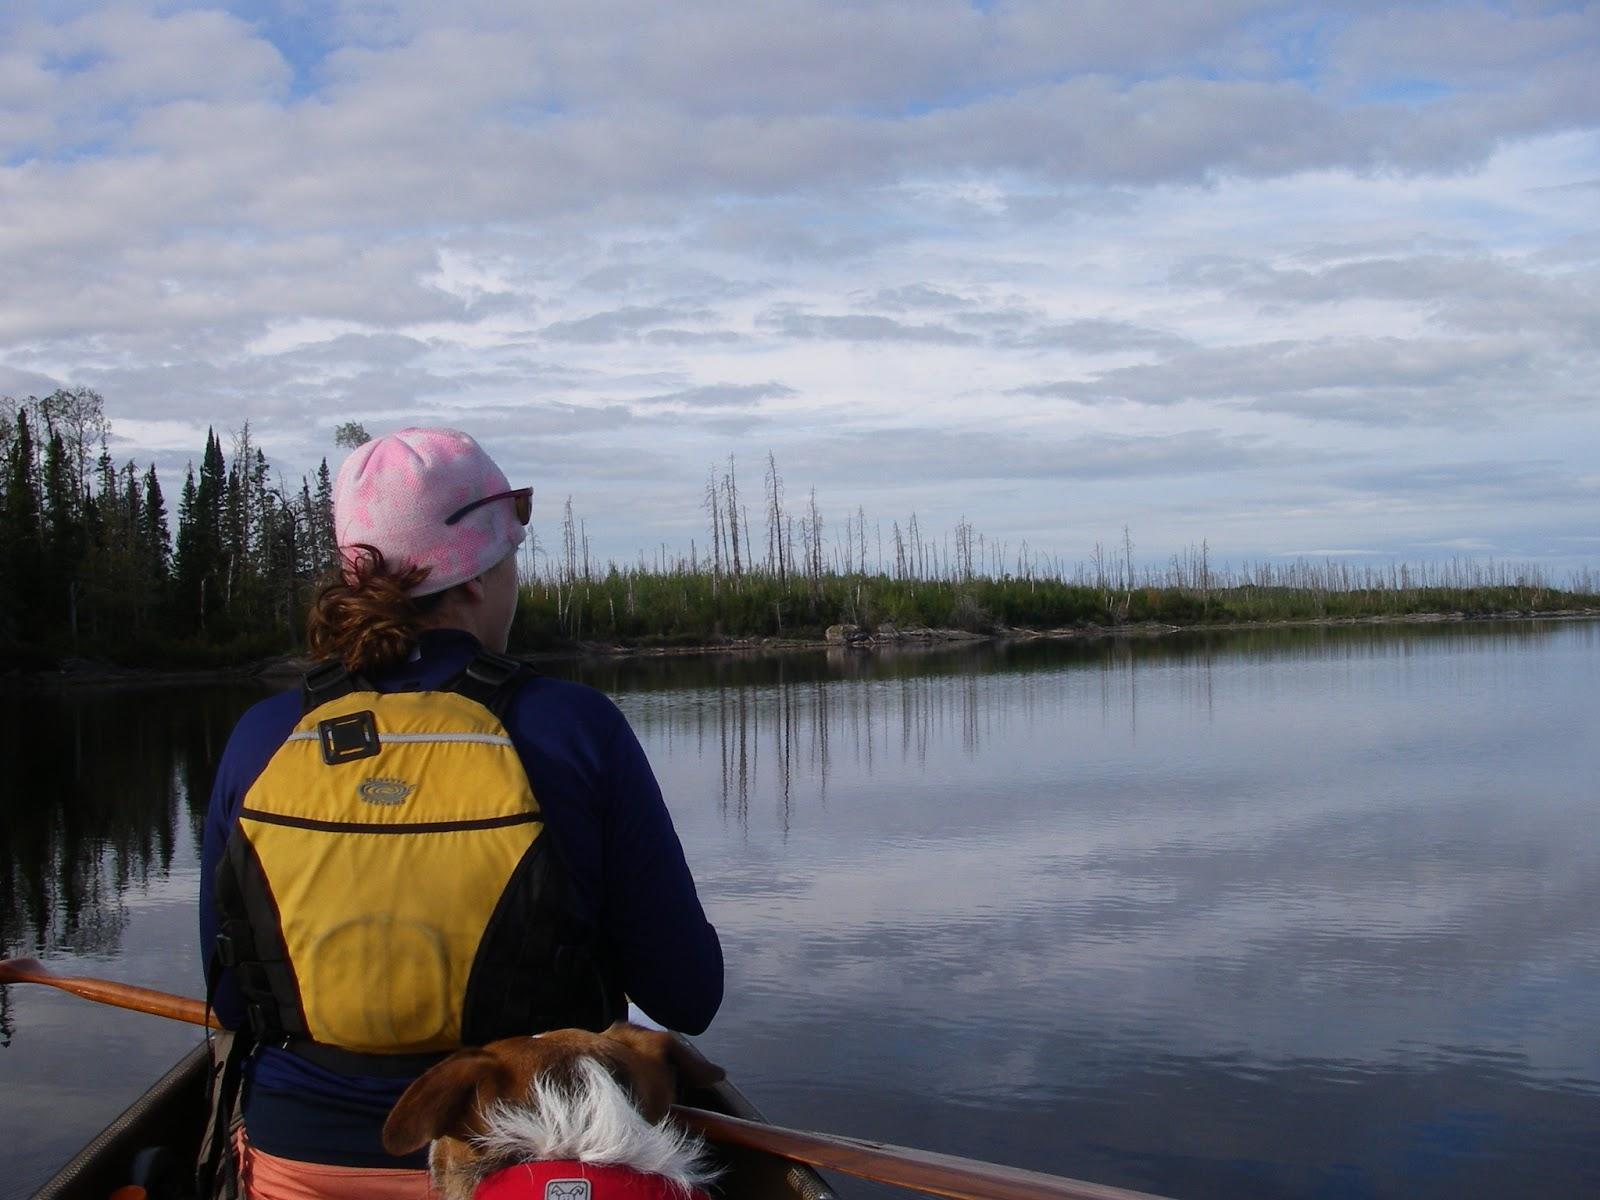 how to get to wabakimi provincial park